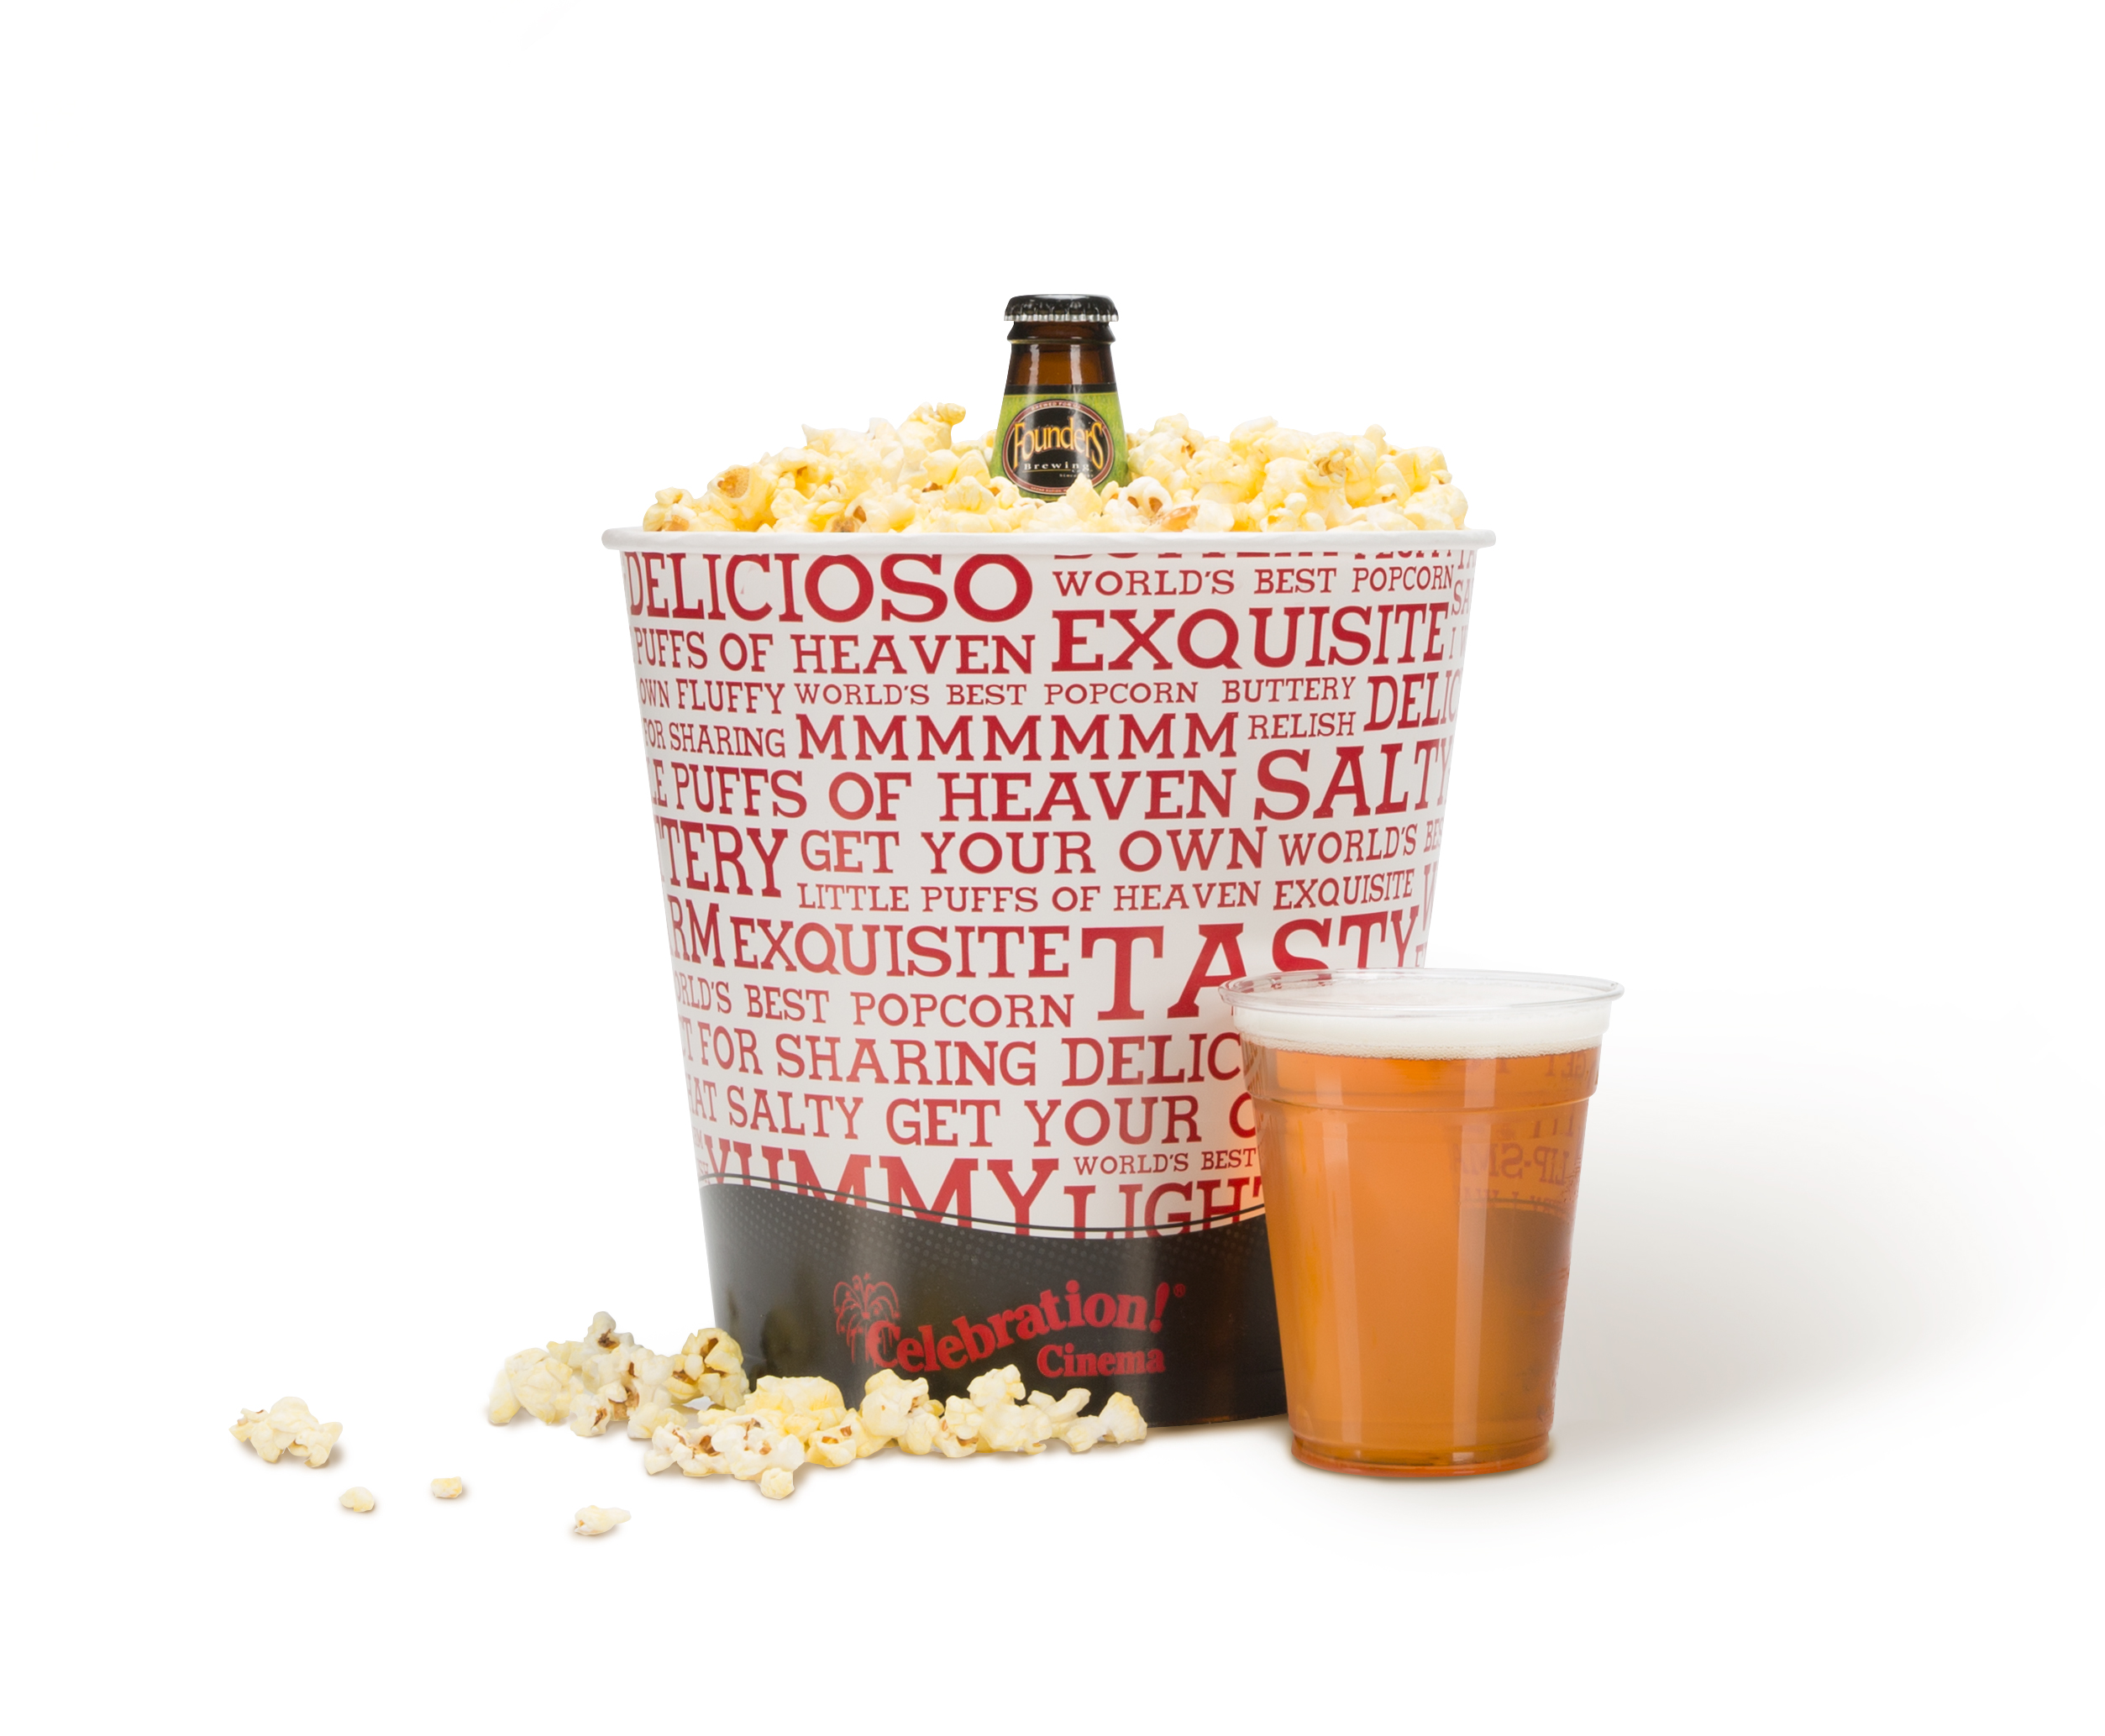 Celebration cinema popcorn bucket with Founders beer